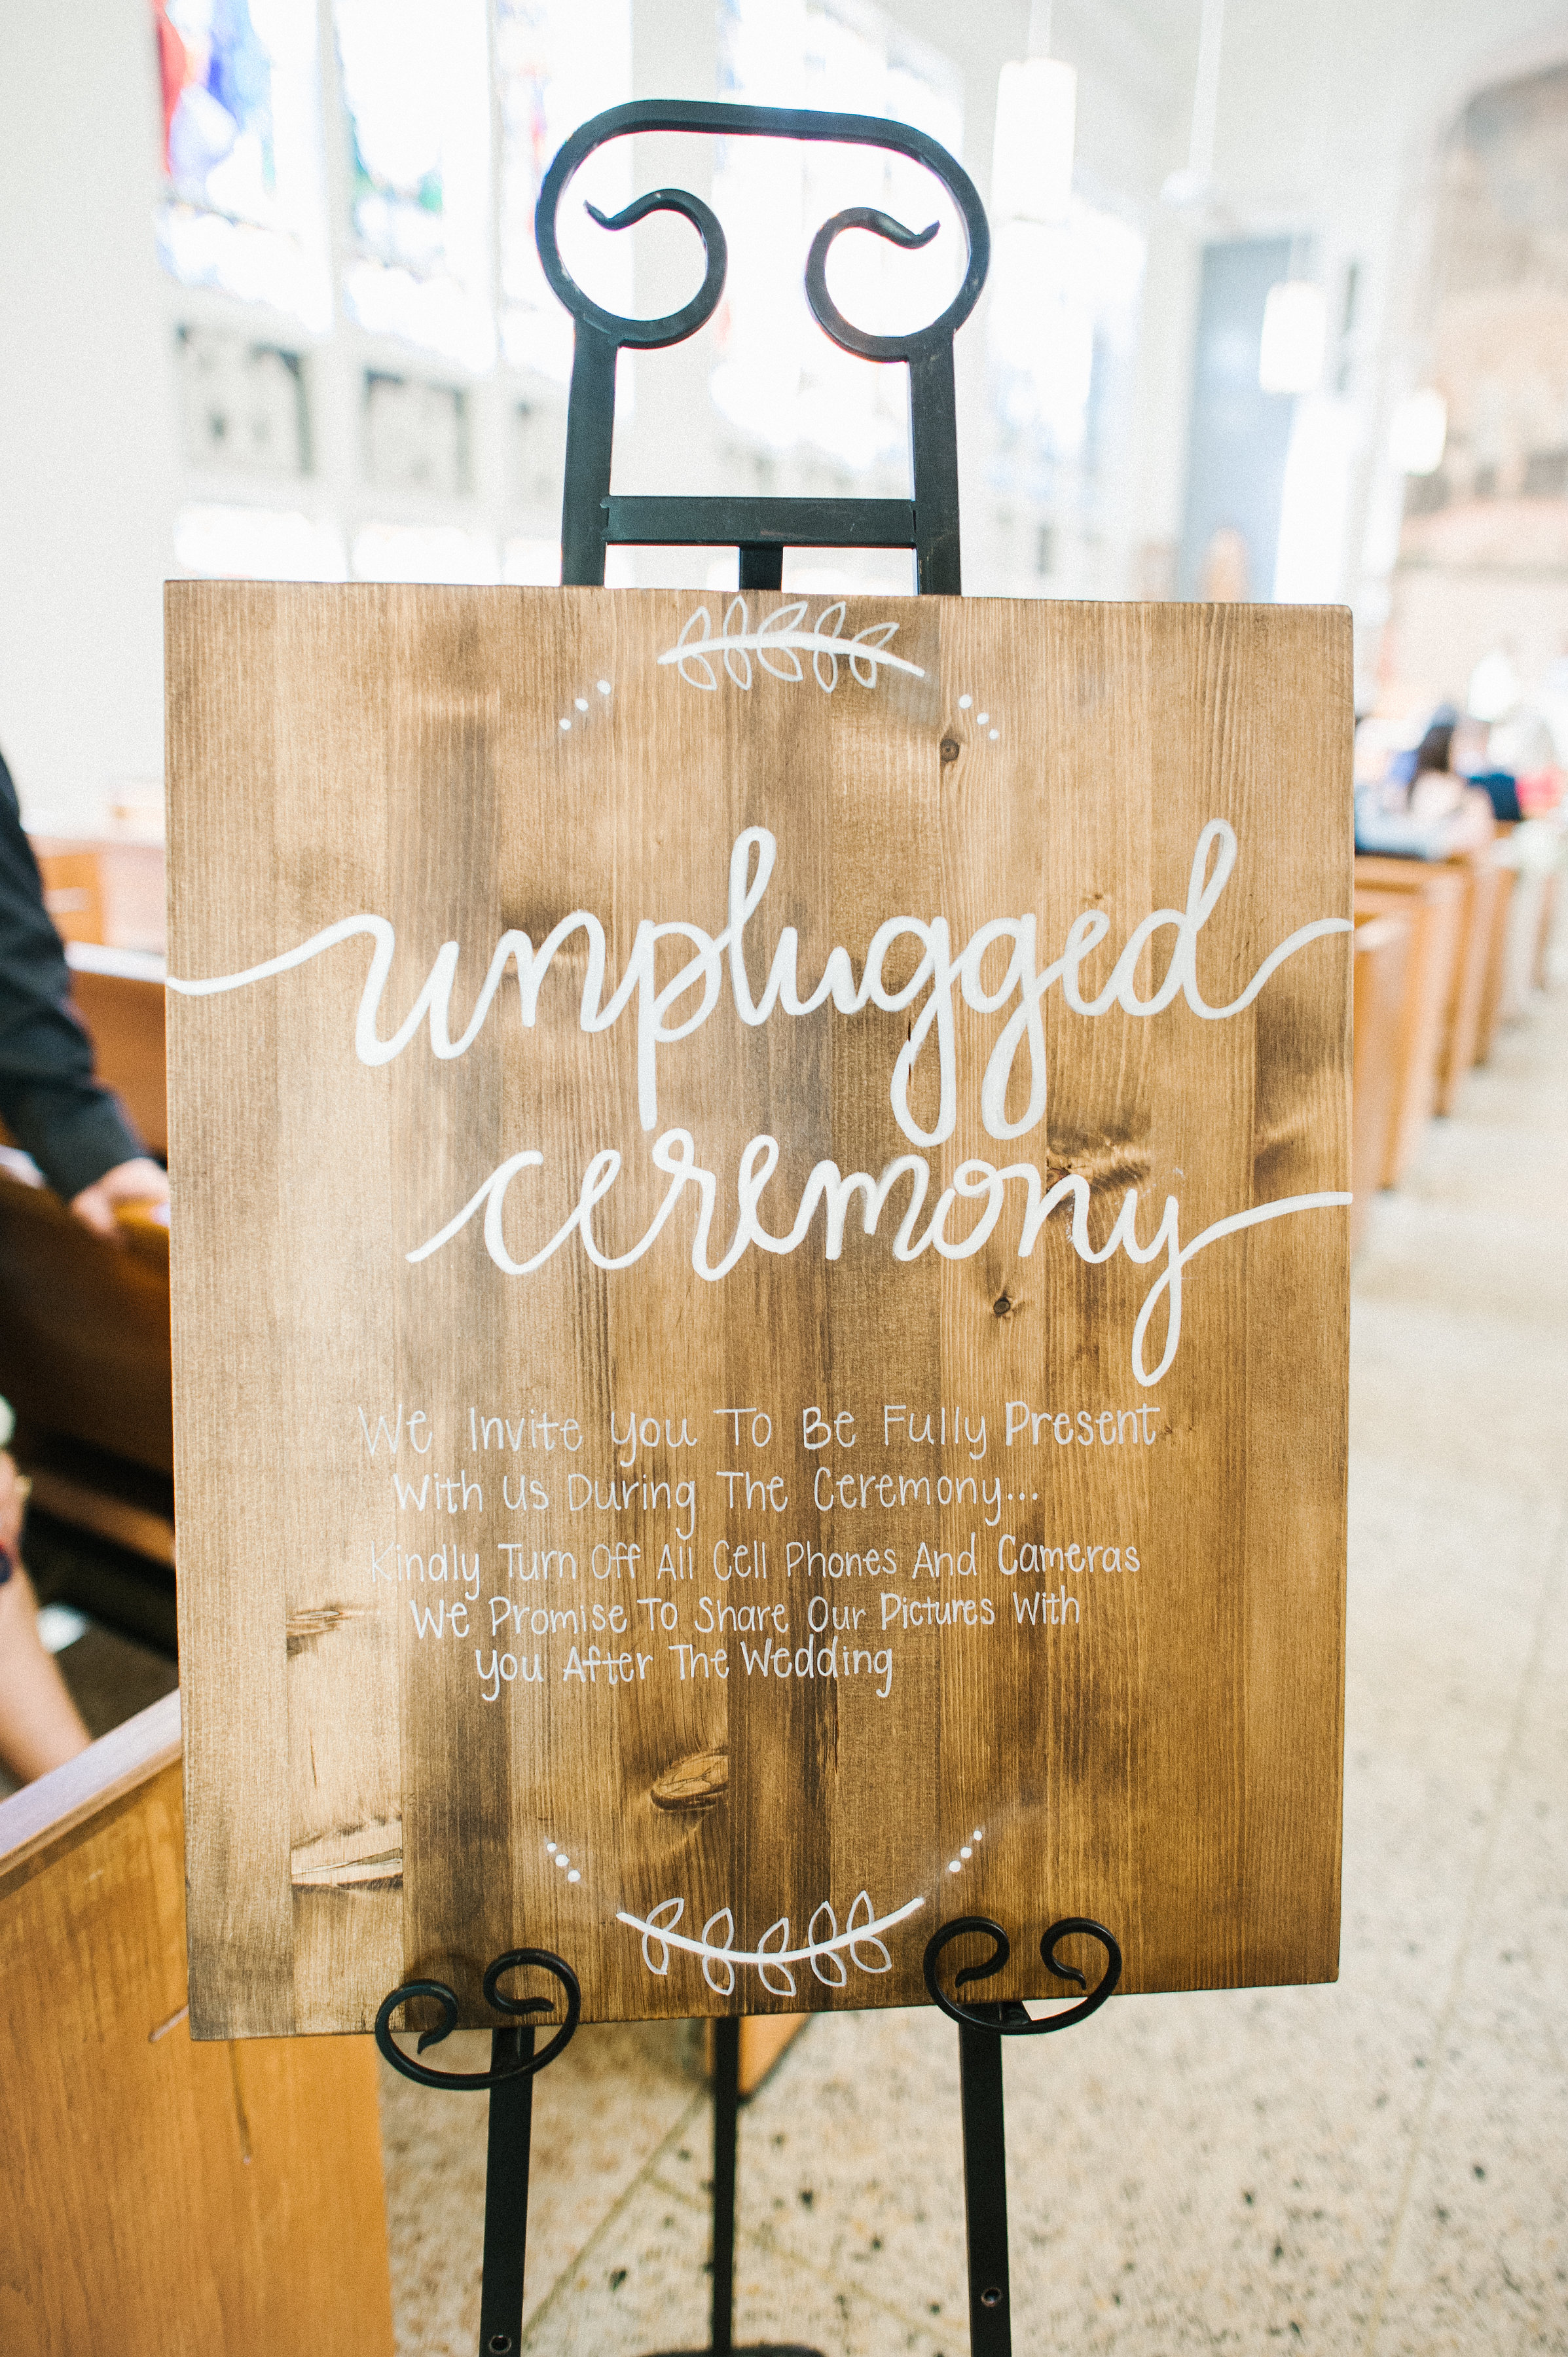 To help eliminate any distractions the couple had this adorable sign made for their unplugged ceremony.